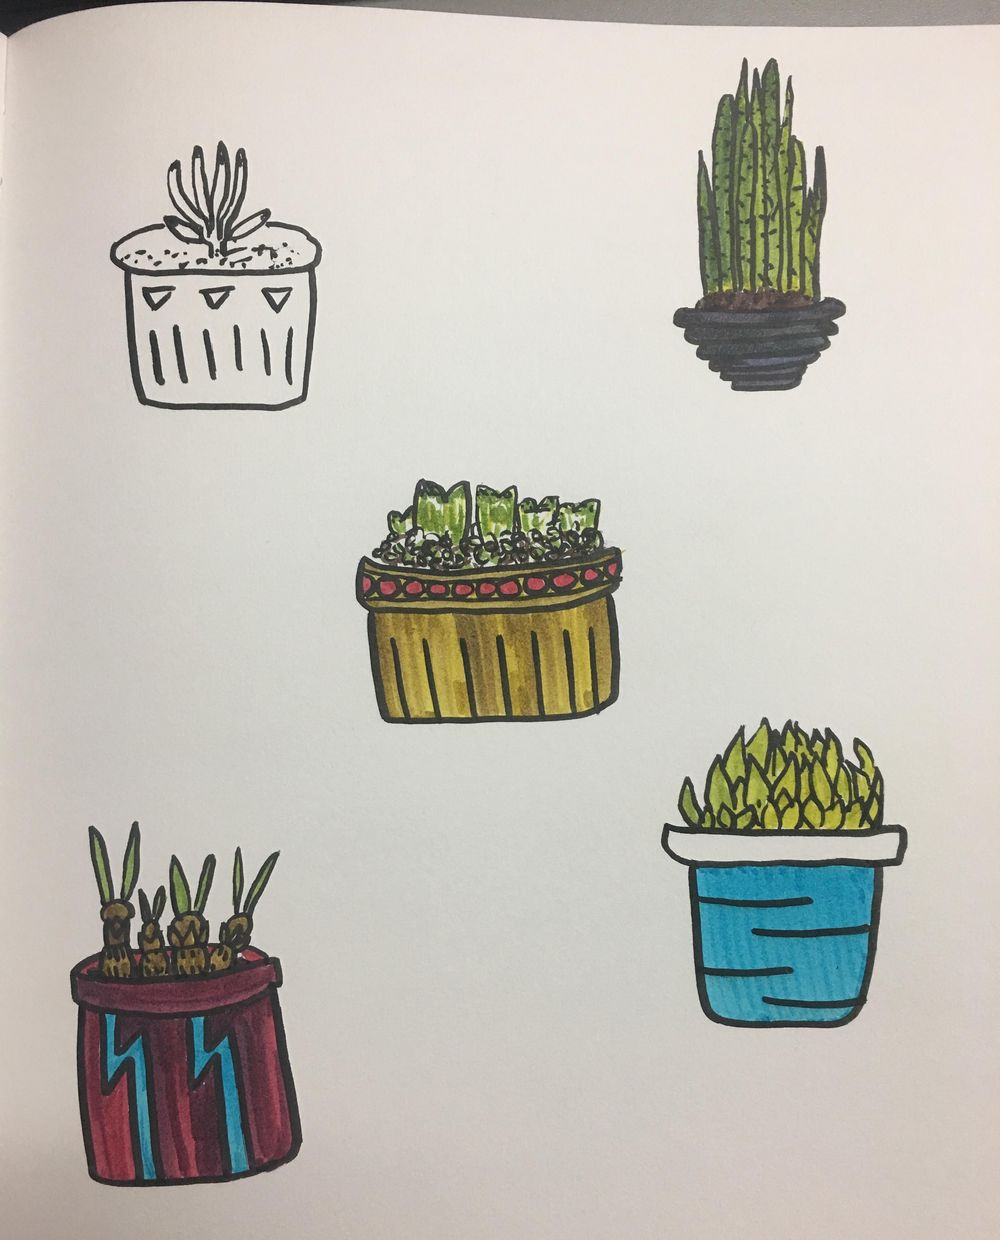 Cacti love - image 4 - student project